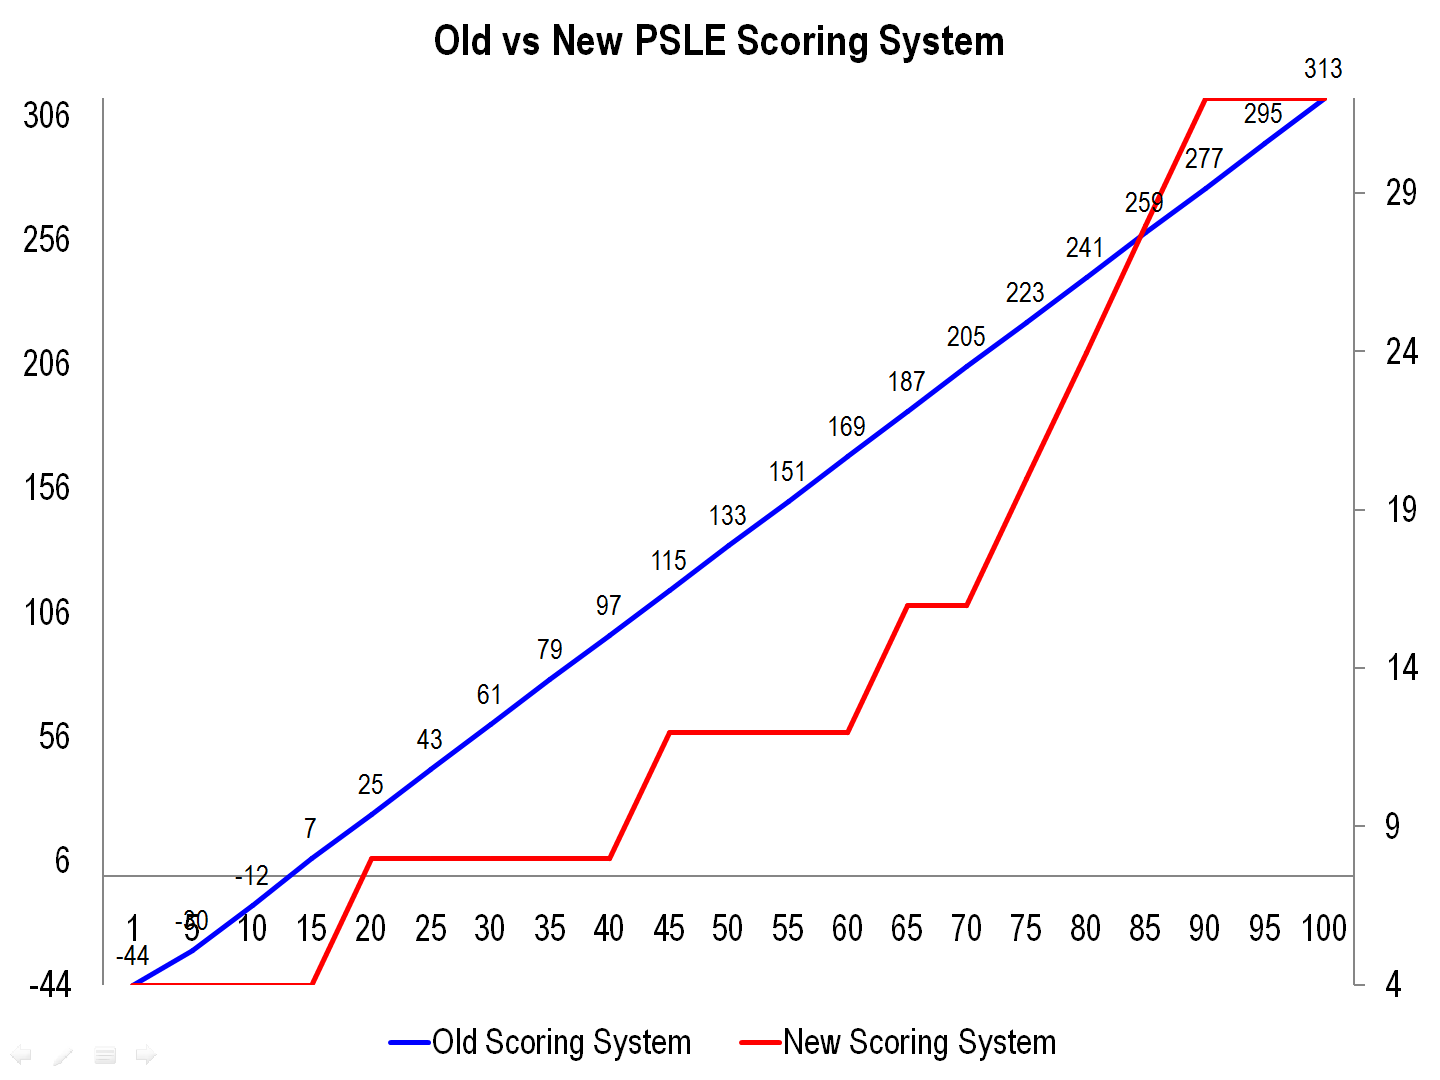 2 Old vs New PSLE Scoring System.png